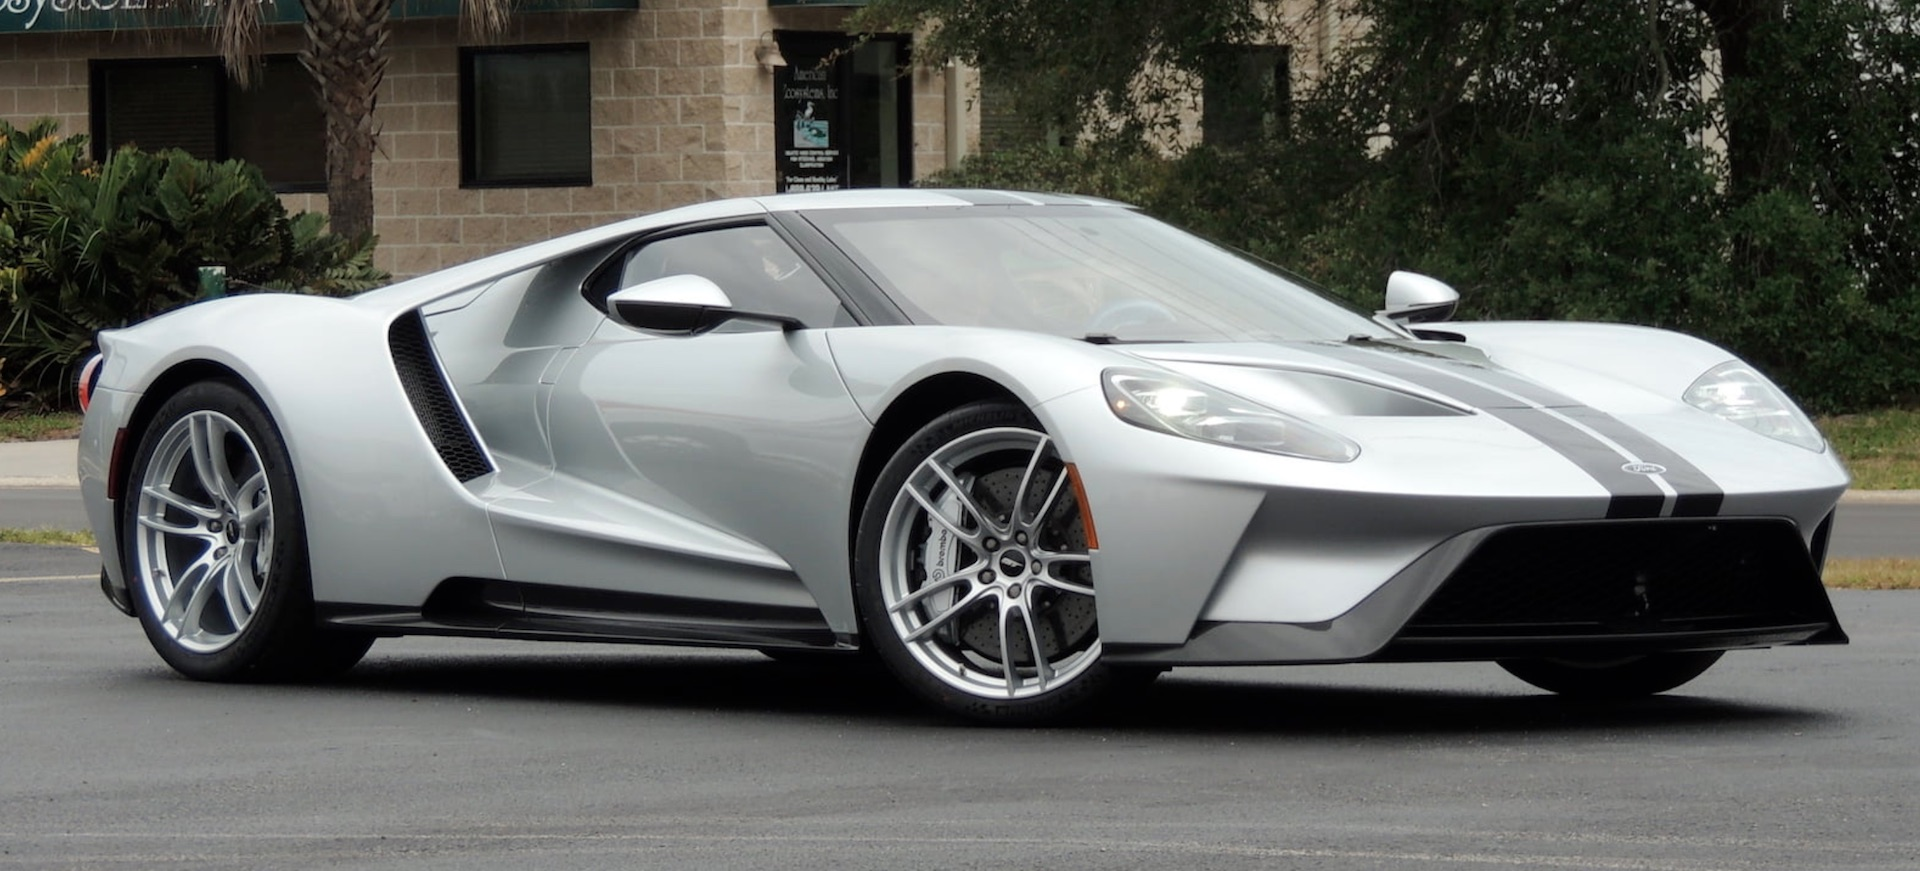 Ford Has Been Very Particular About Who Can And Cannot Purchase A Second Generation Ford Gt And How Long Owners Must Hang Onto The Car Before It Trades